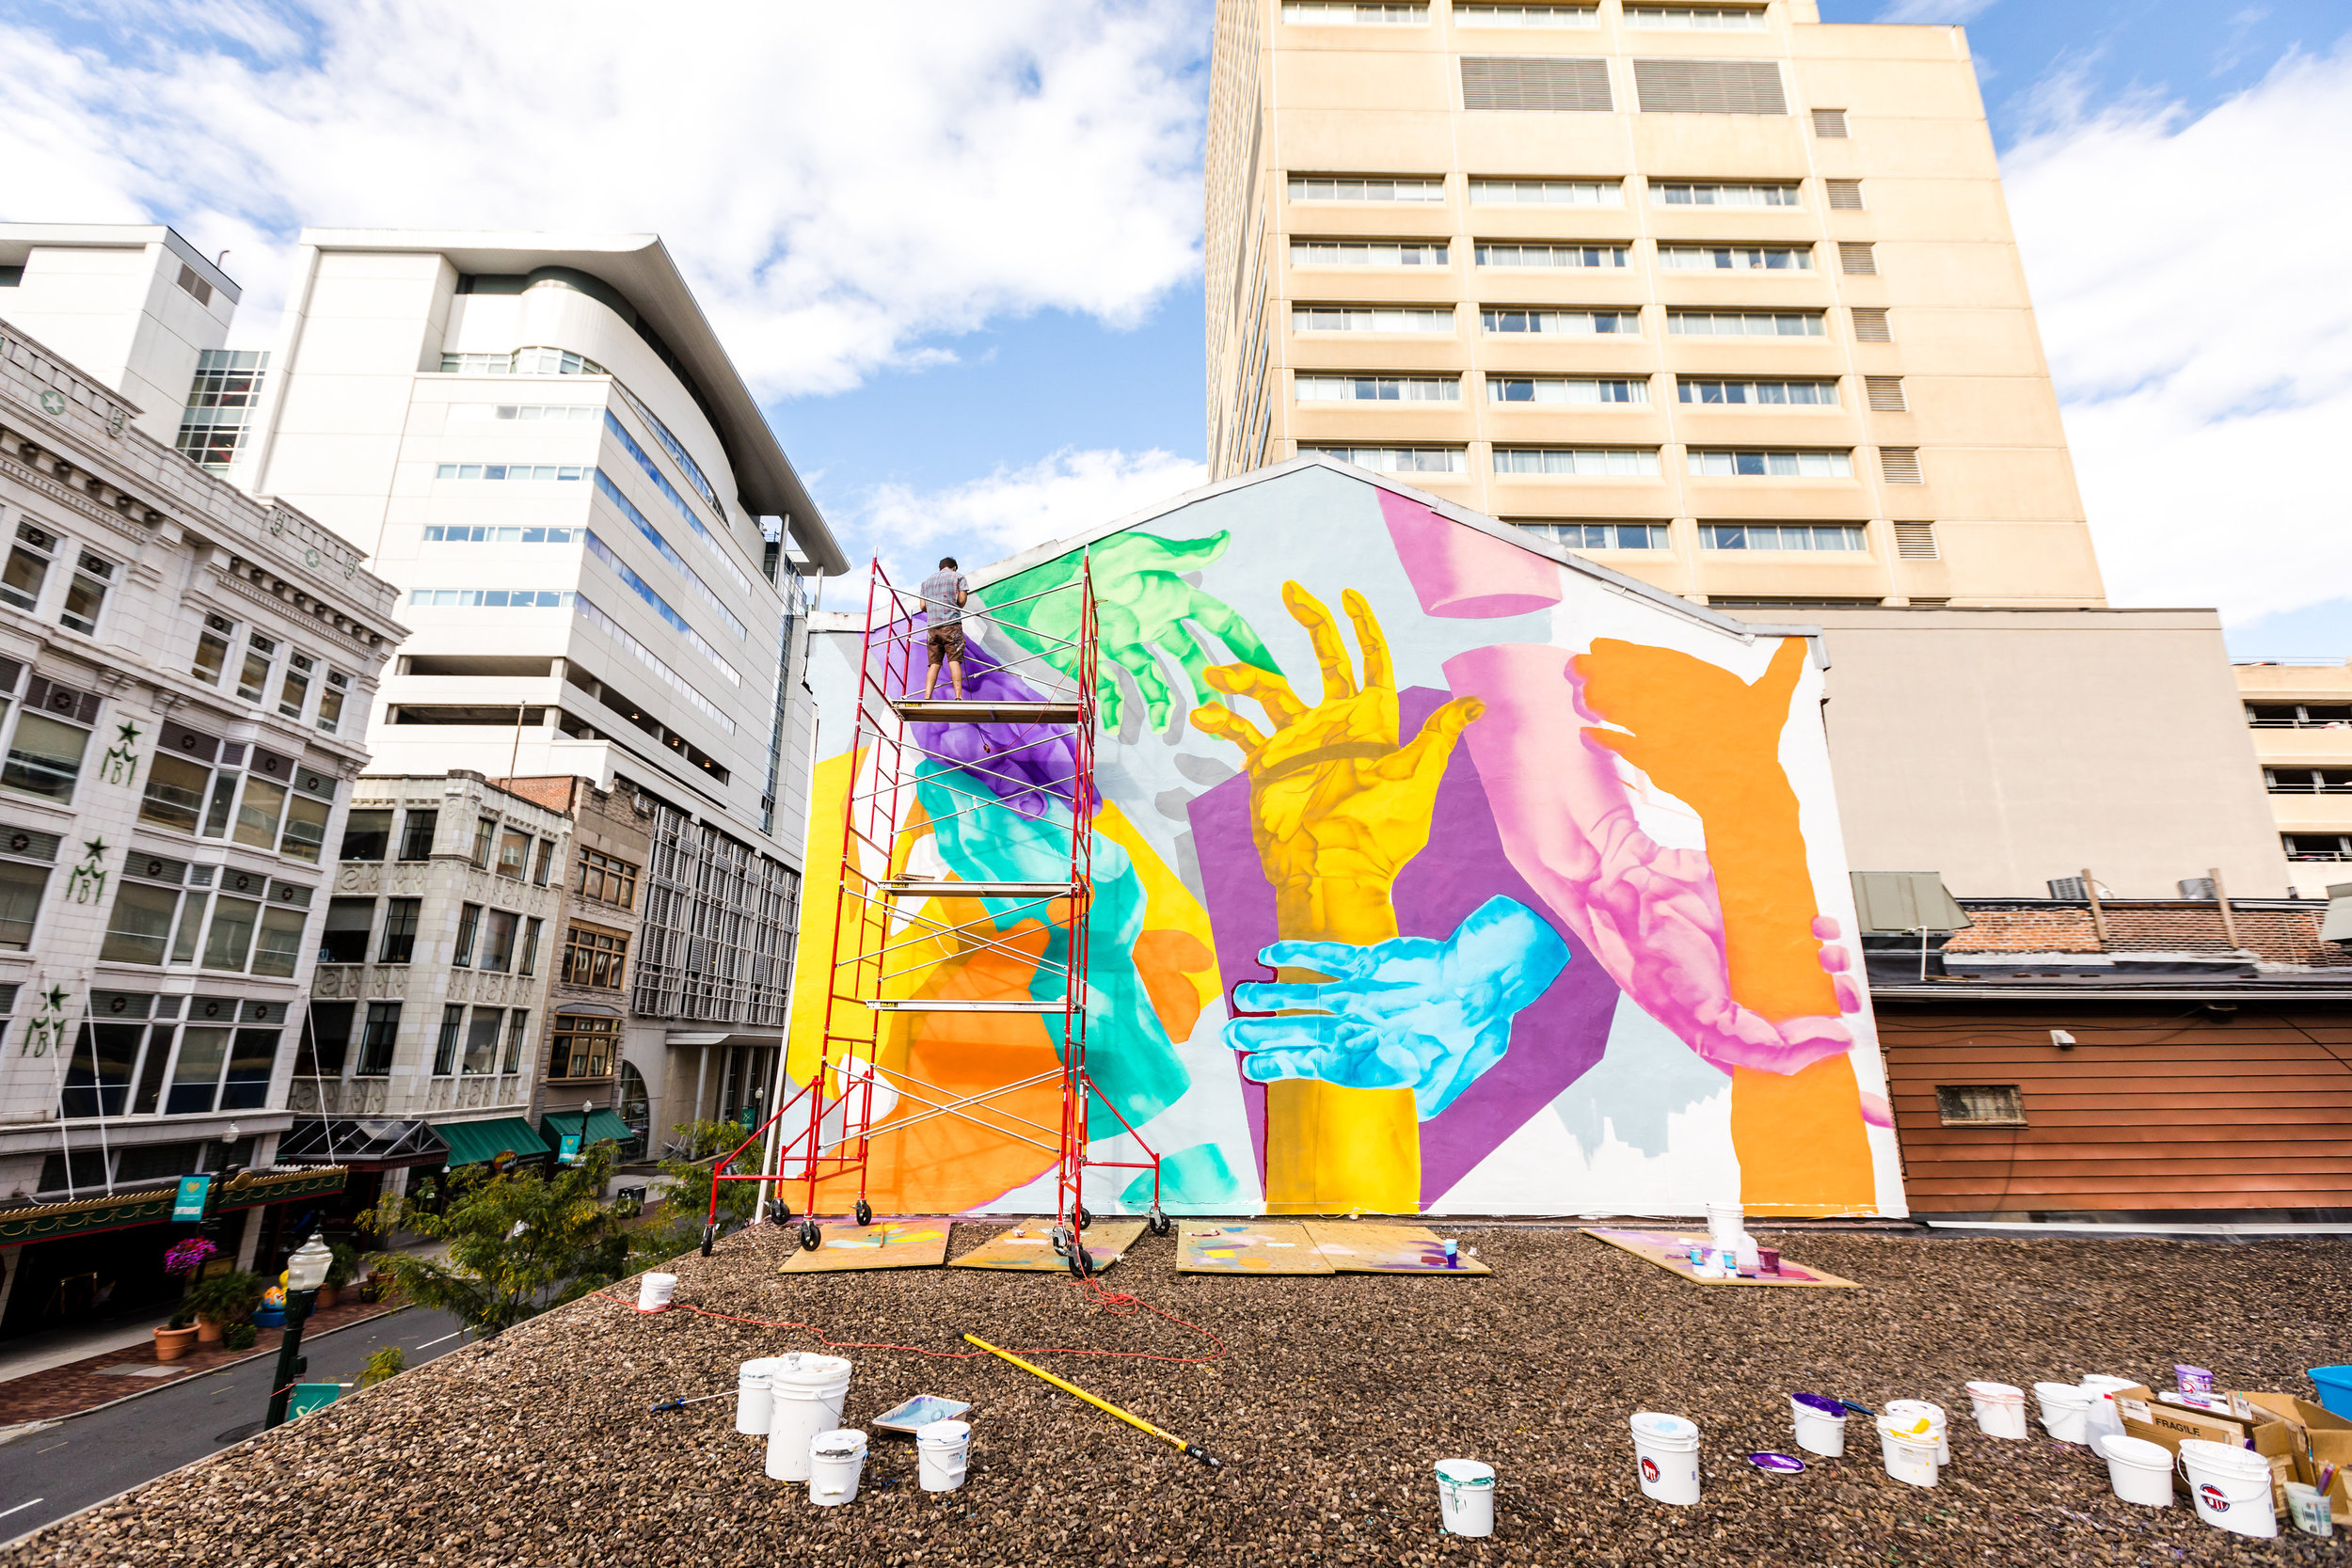 Landon_Wise_Photography_MuralFest-198.jpg